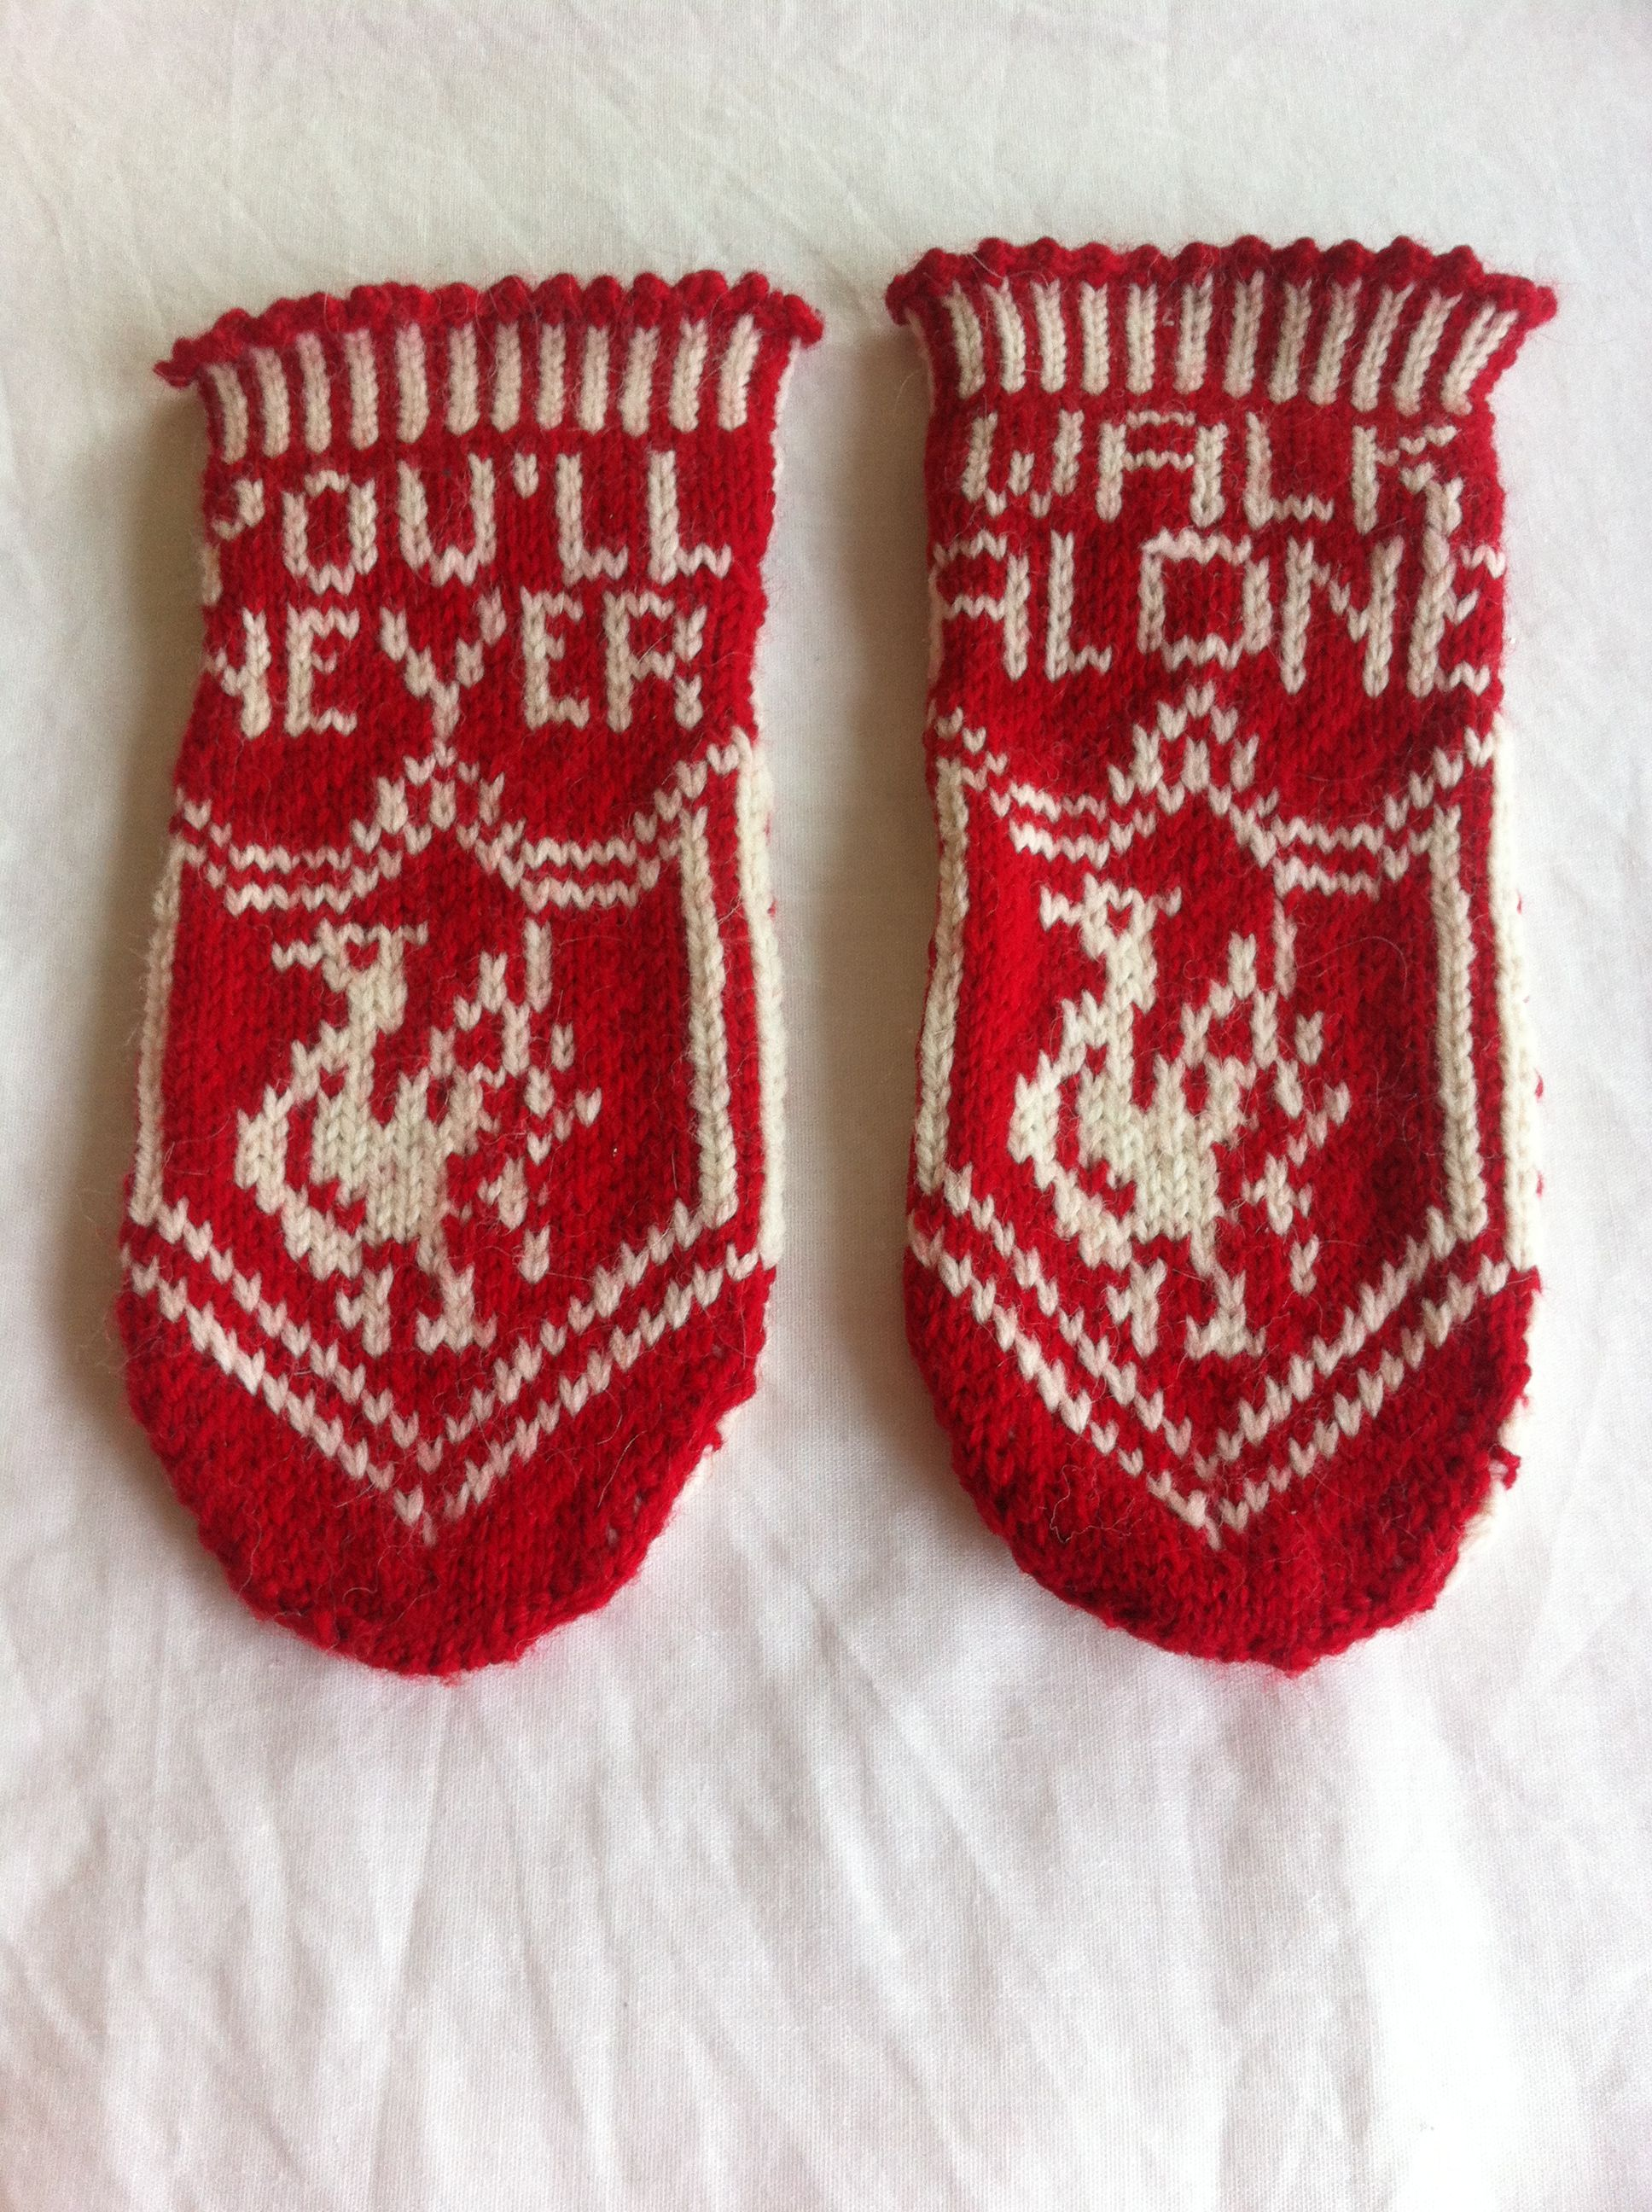 Liverpool-sockslippers. Turned a pattern for mittens into these ...